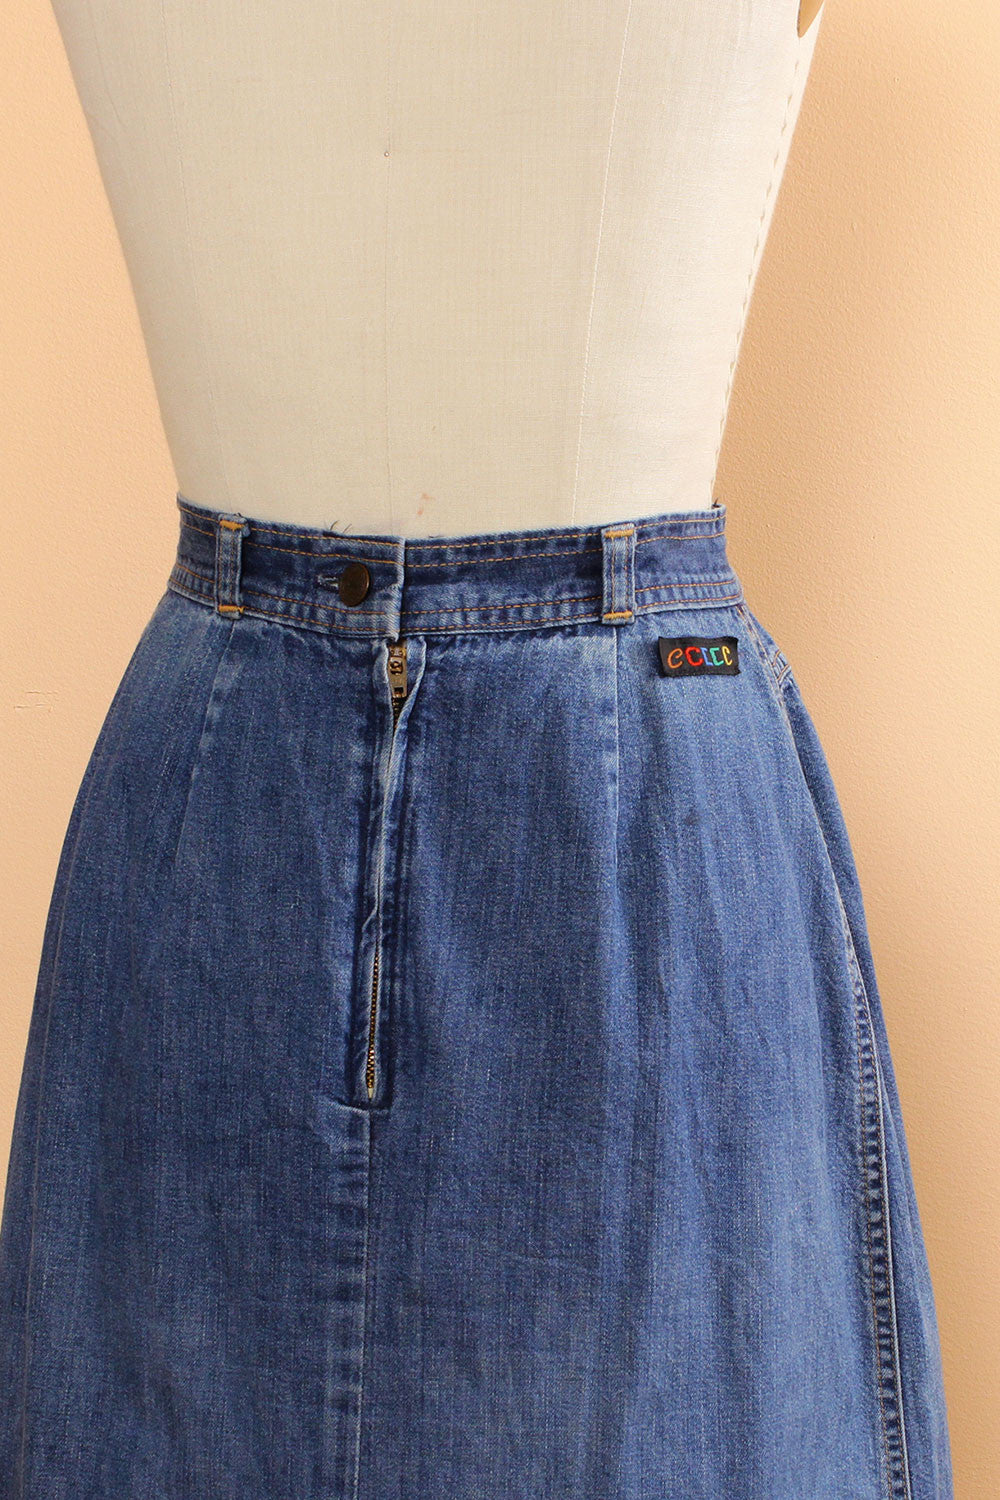 Sia Denim Yoke Skirt S